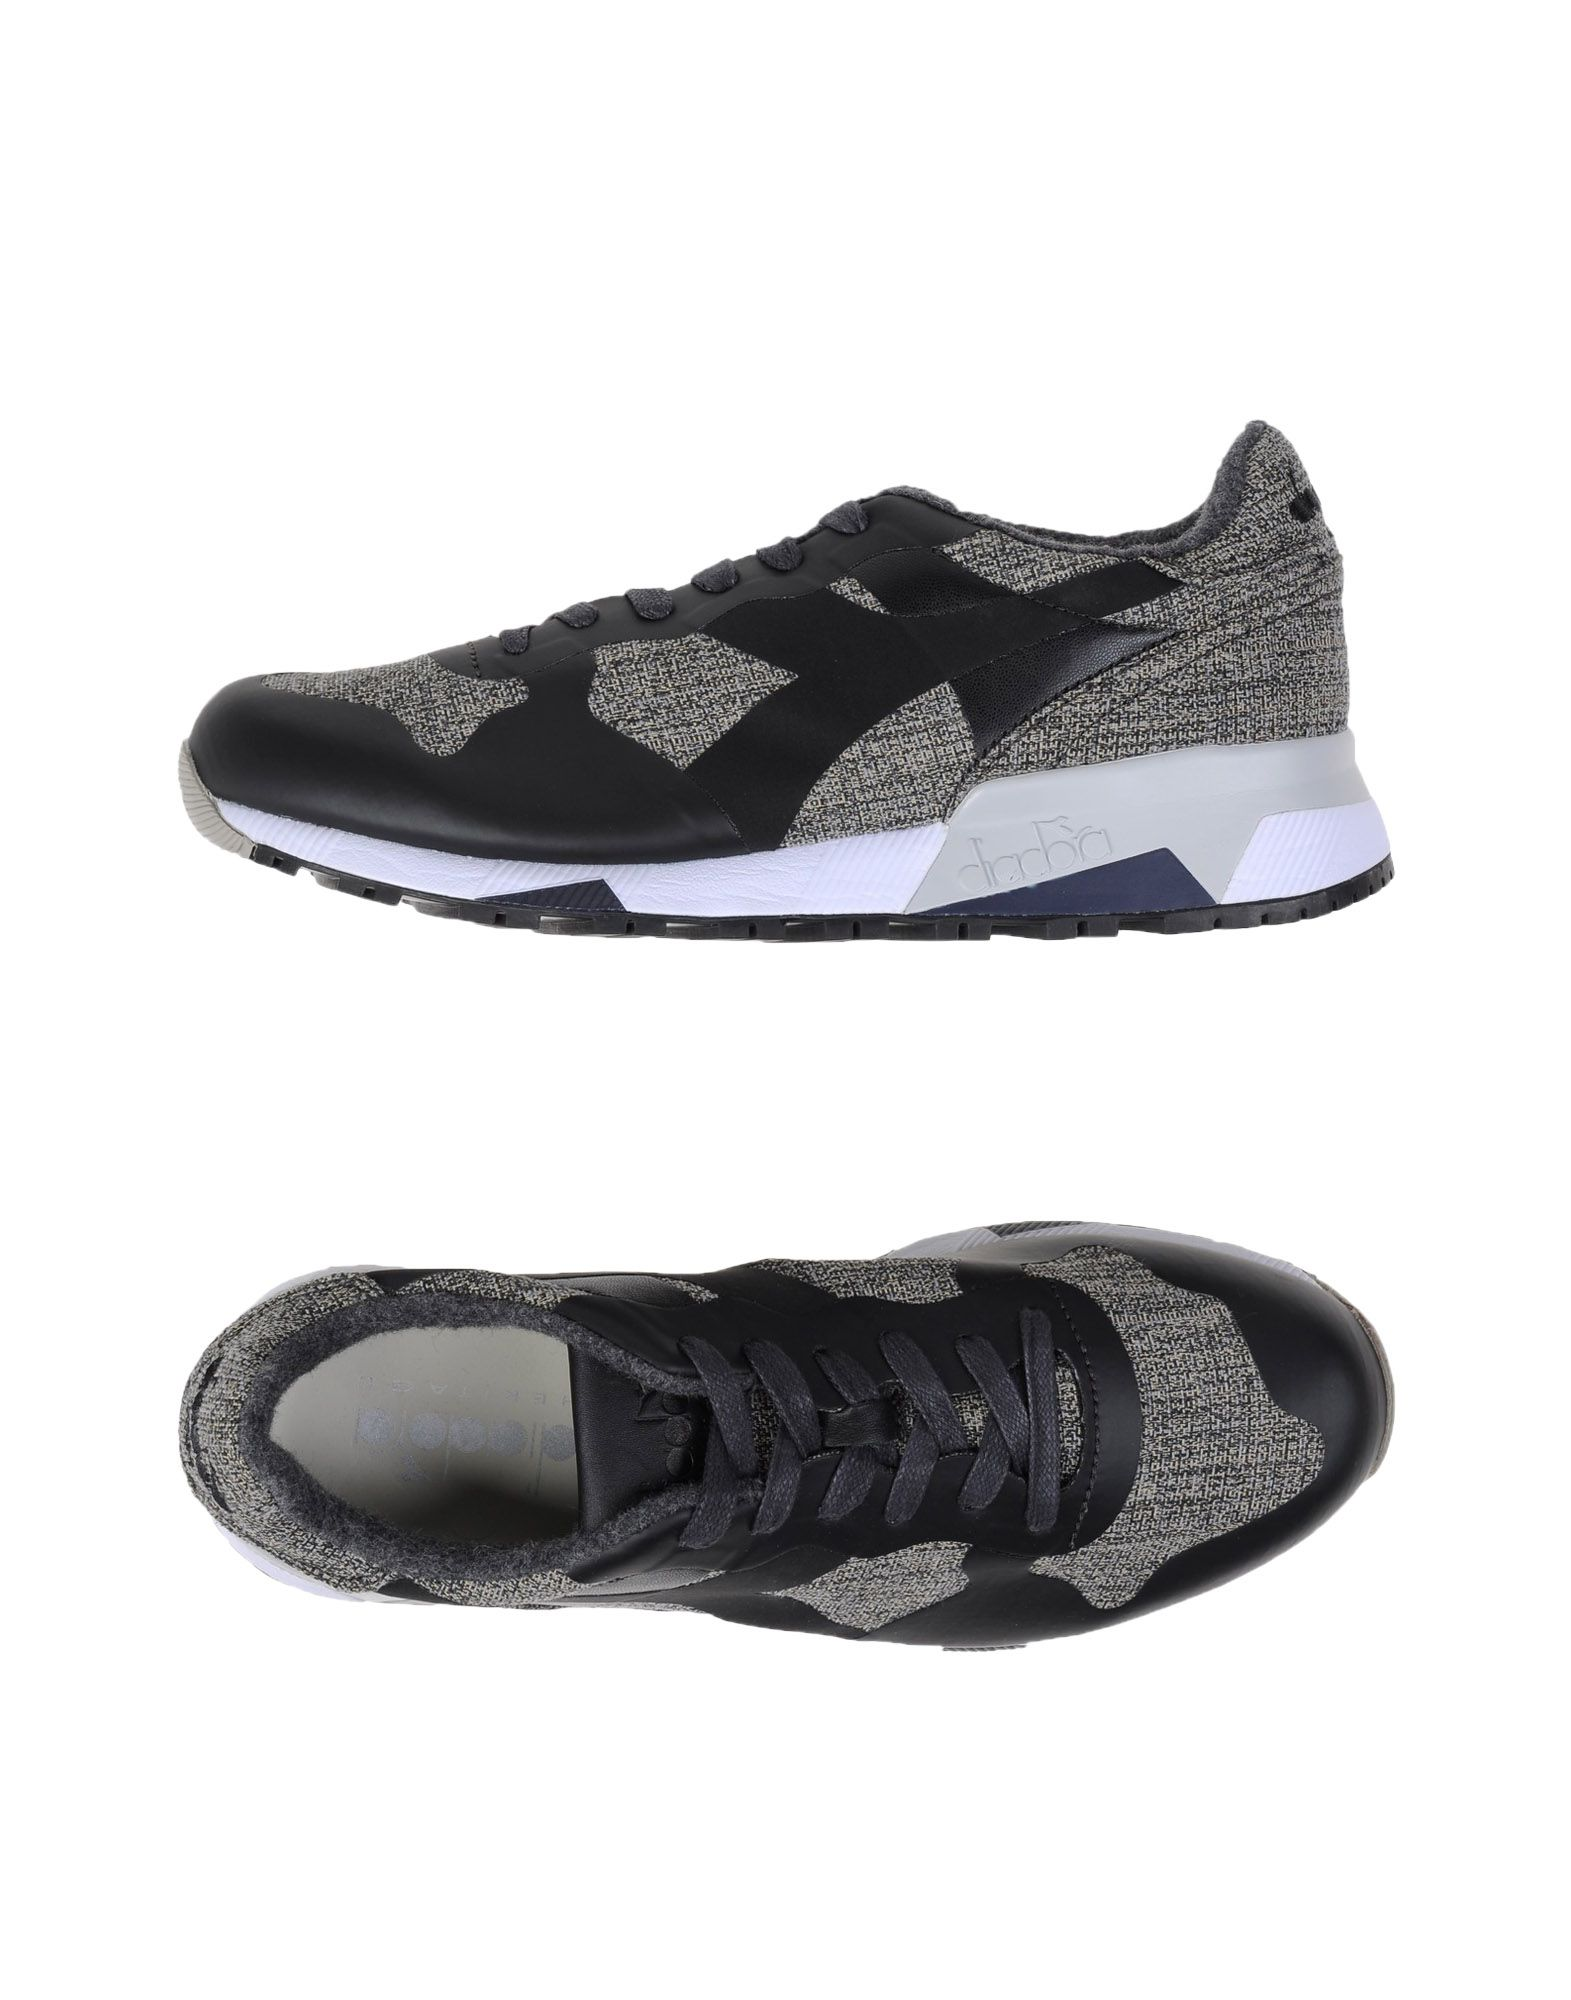 Sneakers Diadora Heritage Trident 90 Fuse - Homme - Sneakers Diadora Heritage sur